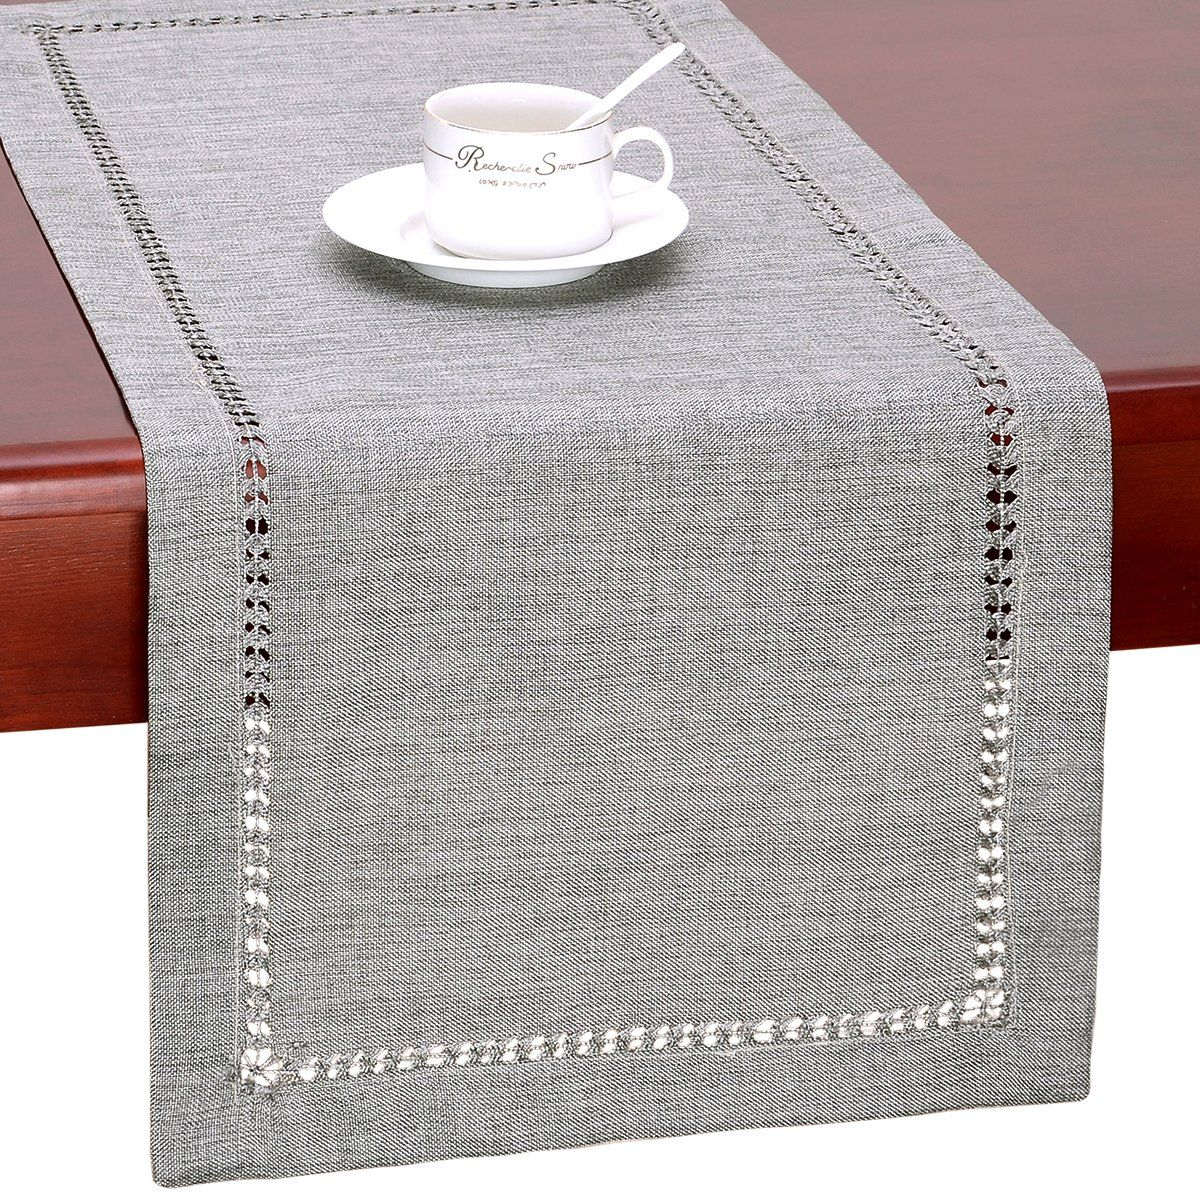 Grelucgo Handmade Hemstitch Gray Dining Table Runner Or Dresser Scarf Rectangular 14 By 36 Inch Lavorist Grey Dining Tables Dining Table Runners Dining Table Placemats